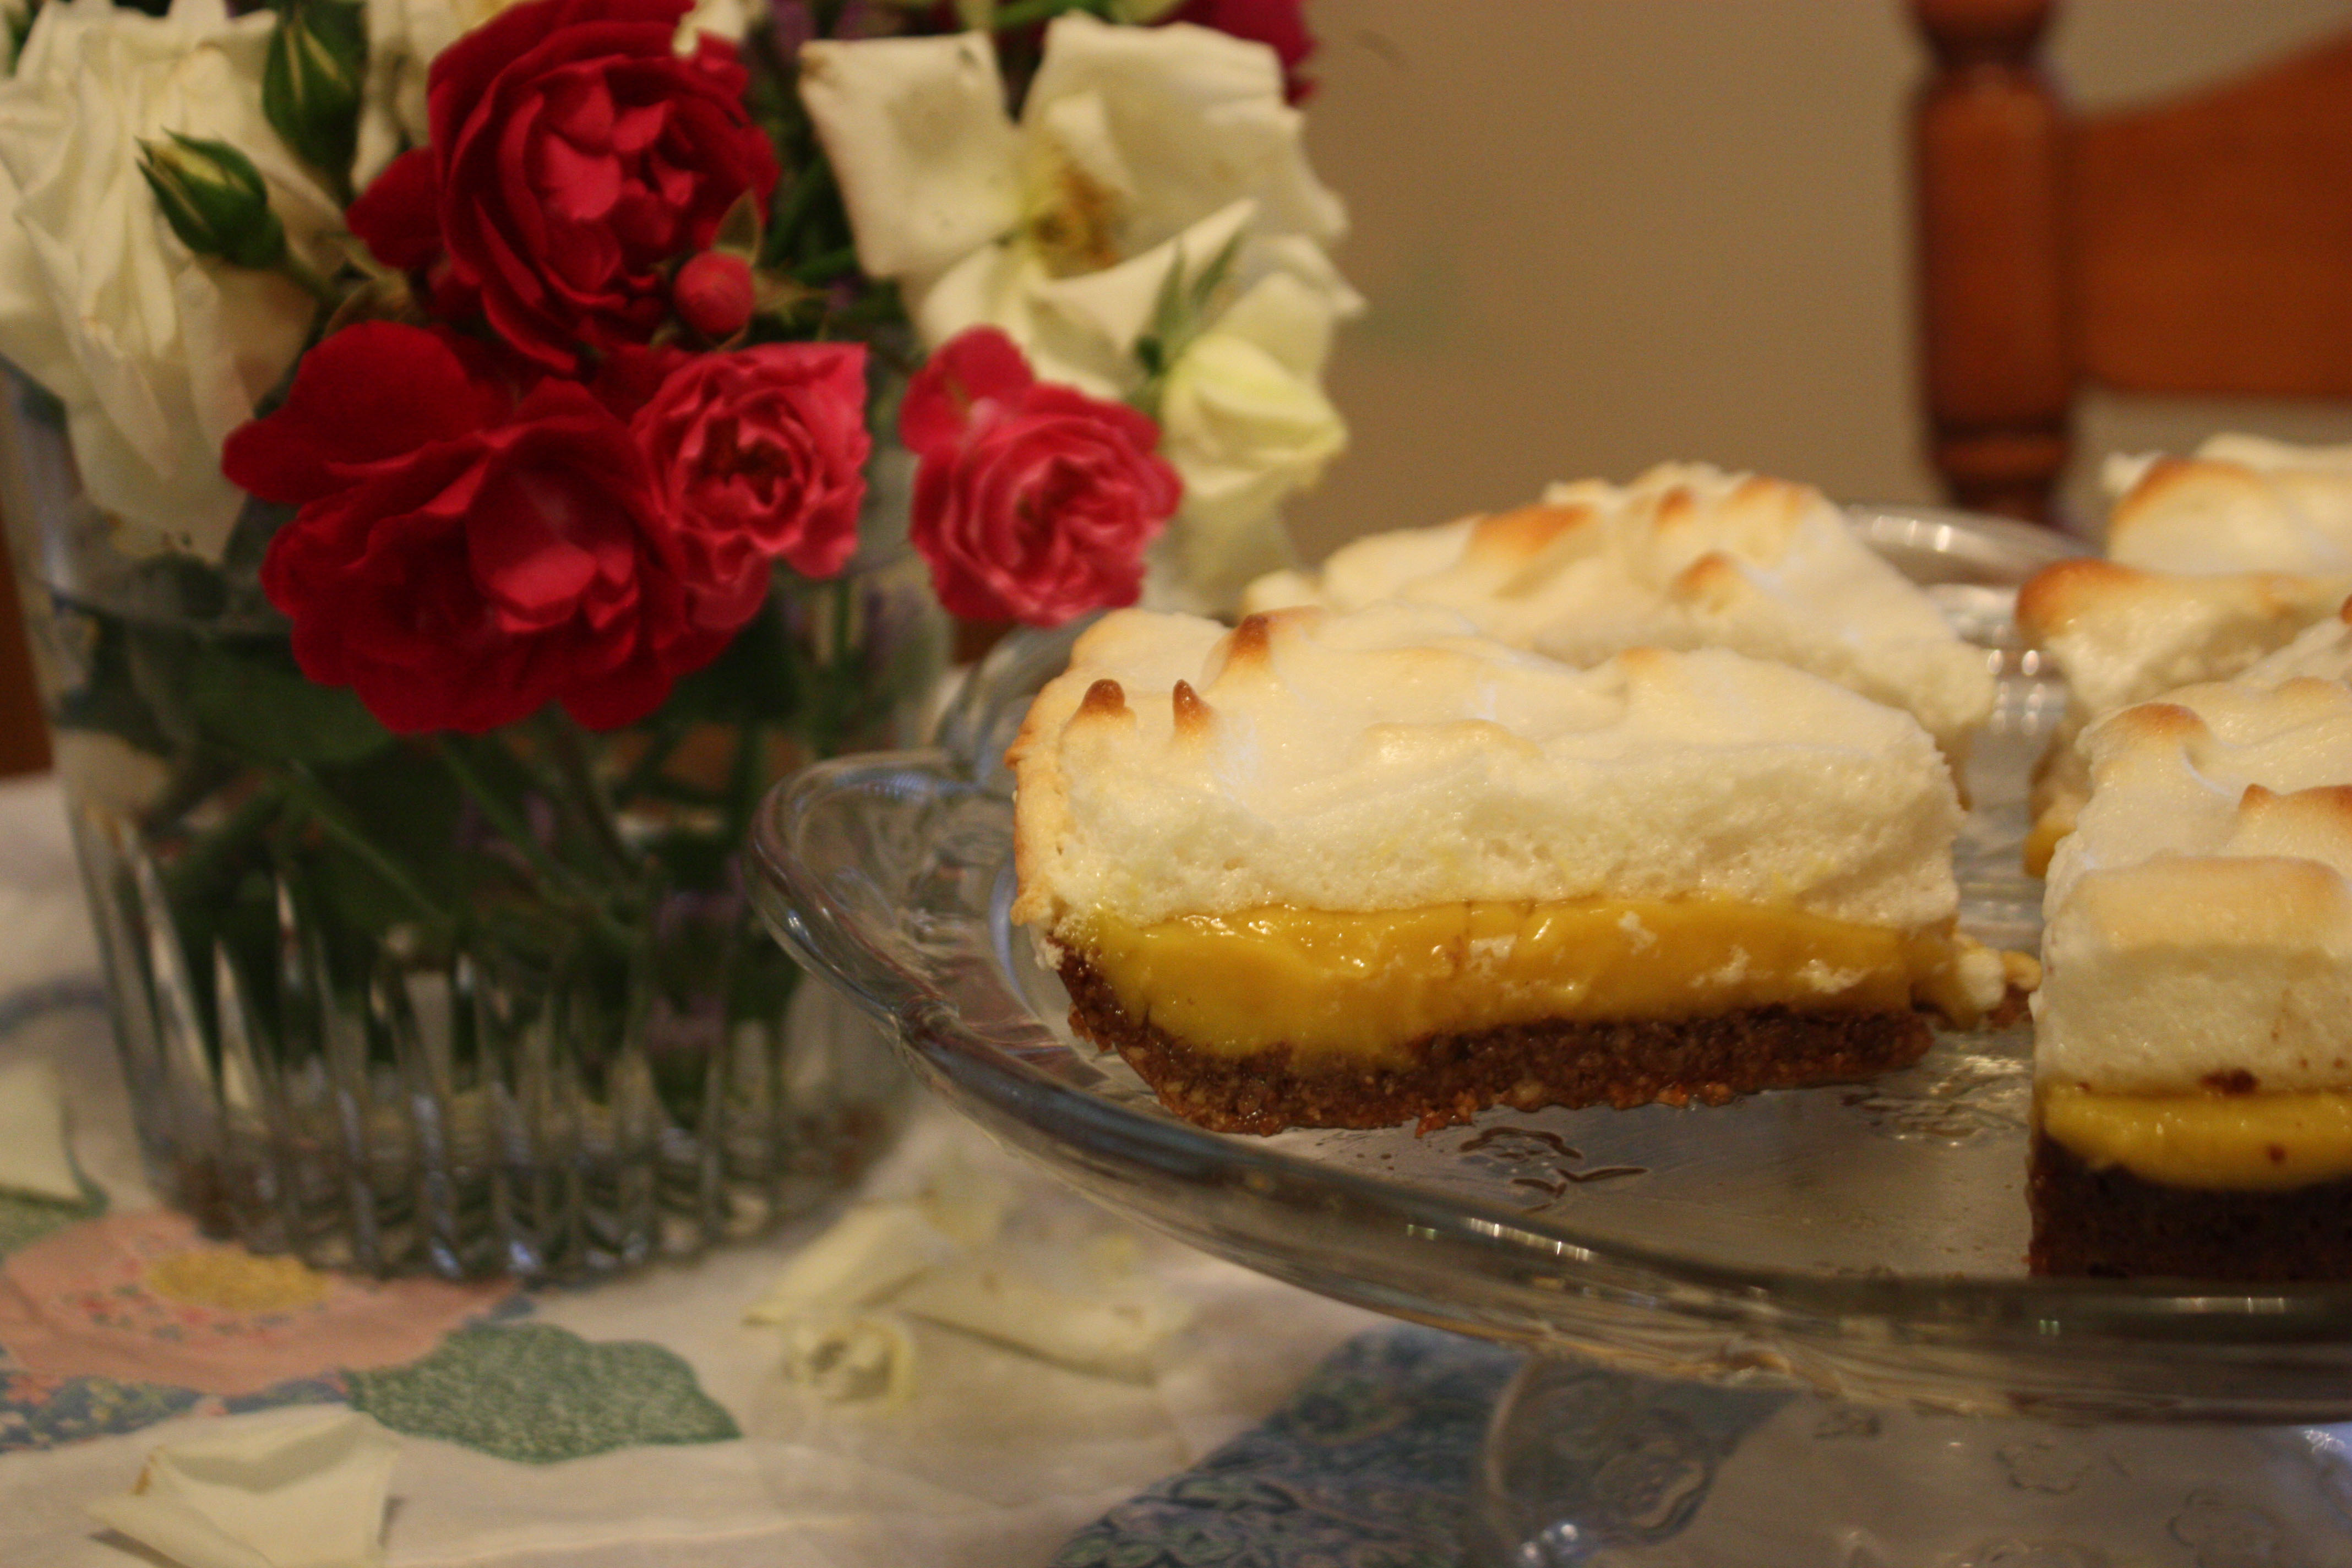 Grain Free Lemon Meringue Pie with Toasted Pecan Crust